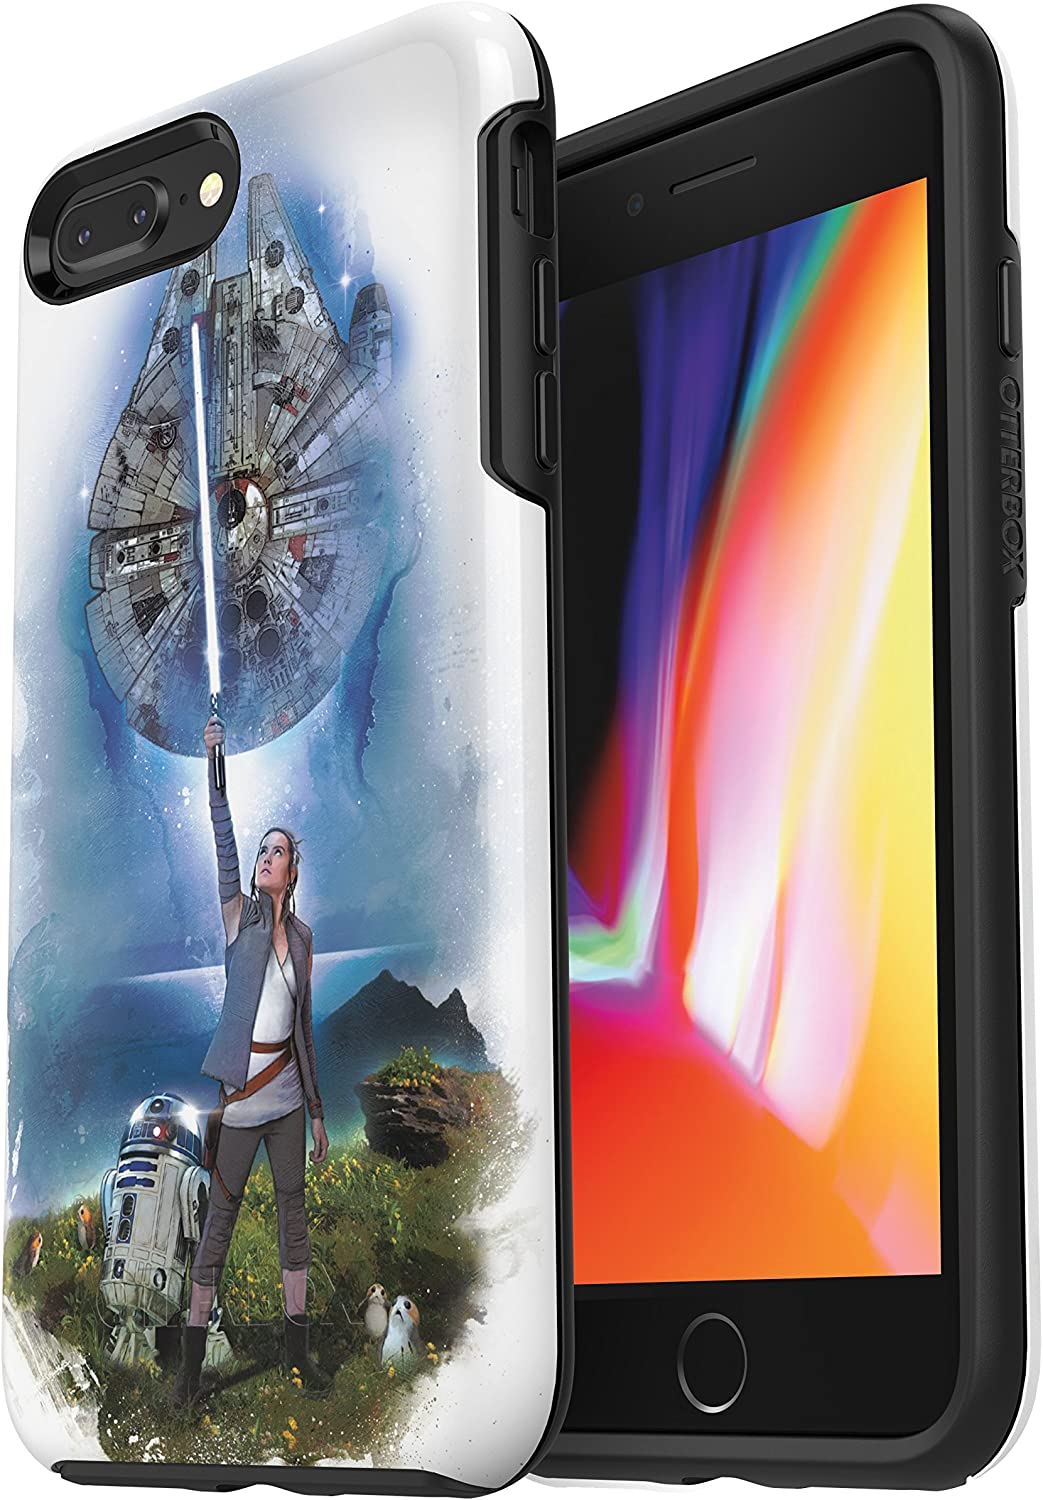 OtterBox SYMMETRY SERIES STAR WARS Case for iPhone 8 PLUS & iPhone 7 PLUS (ONLY) ON AHCH-TO